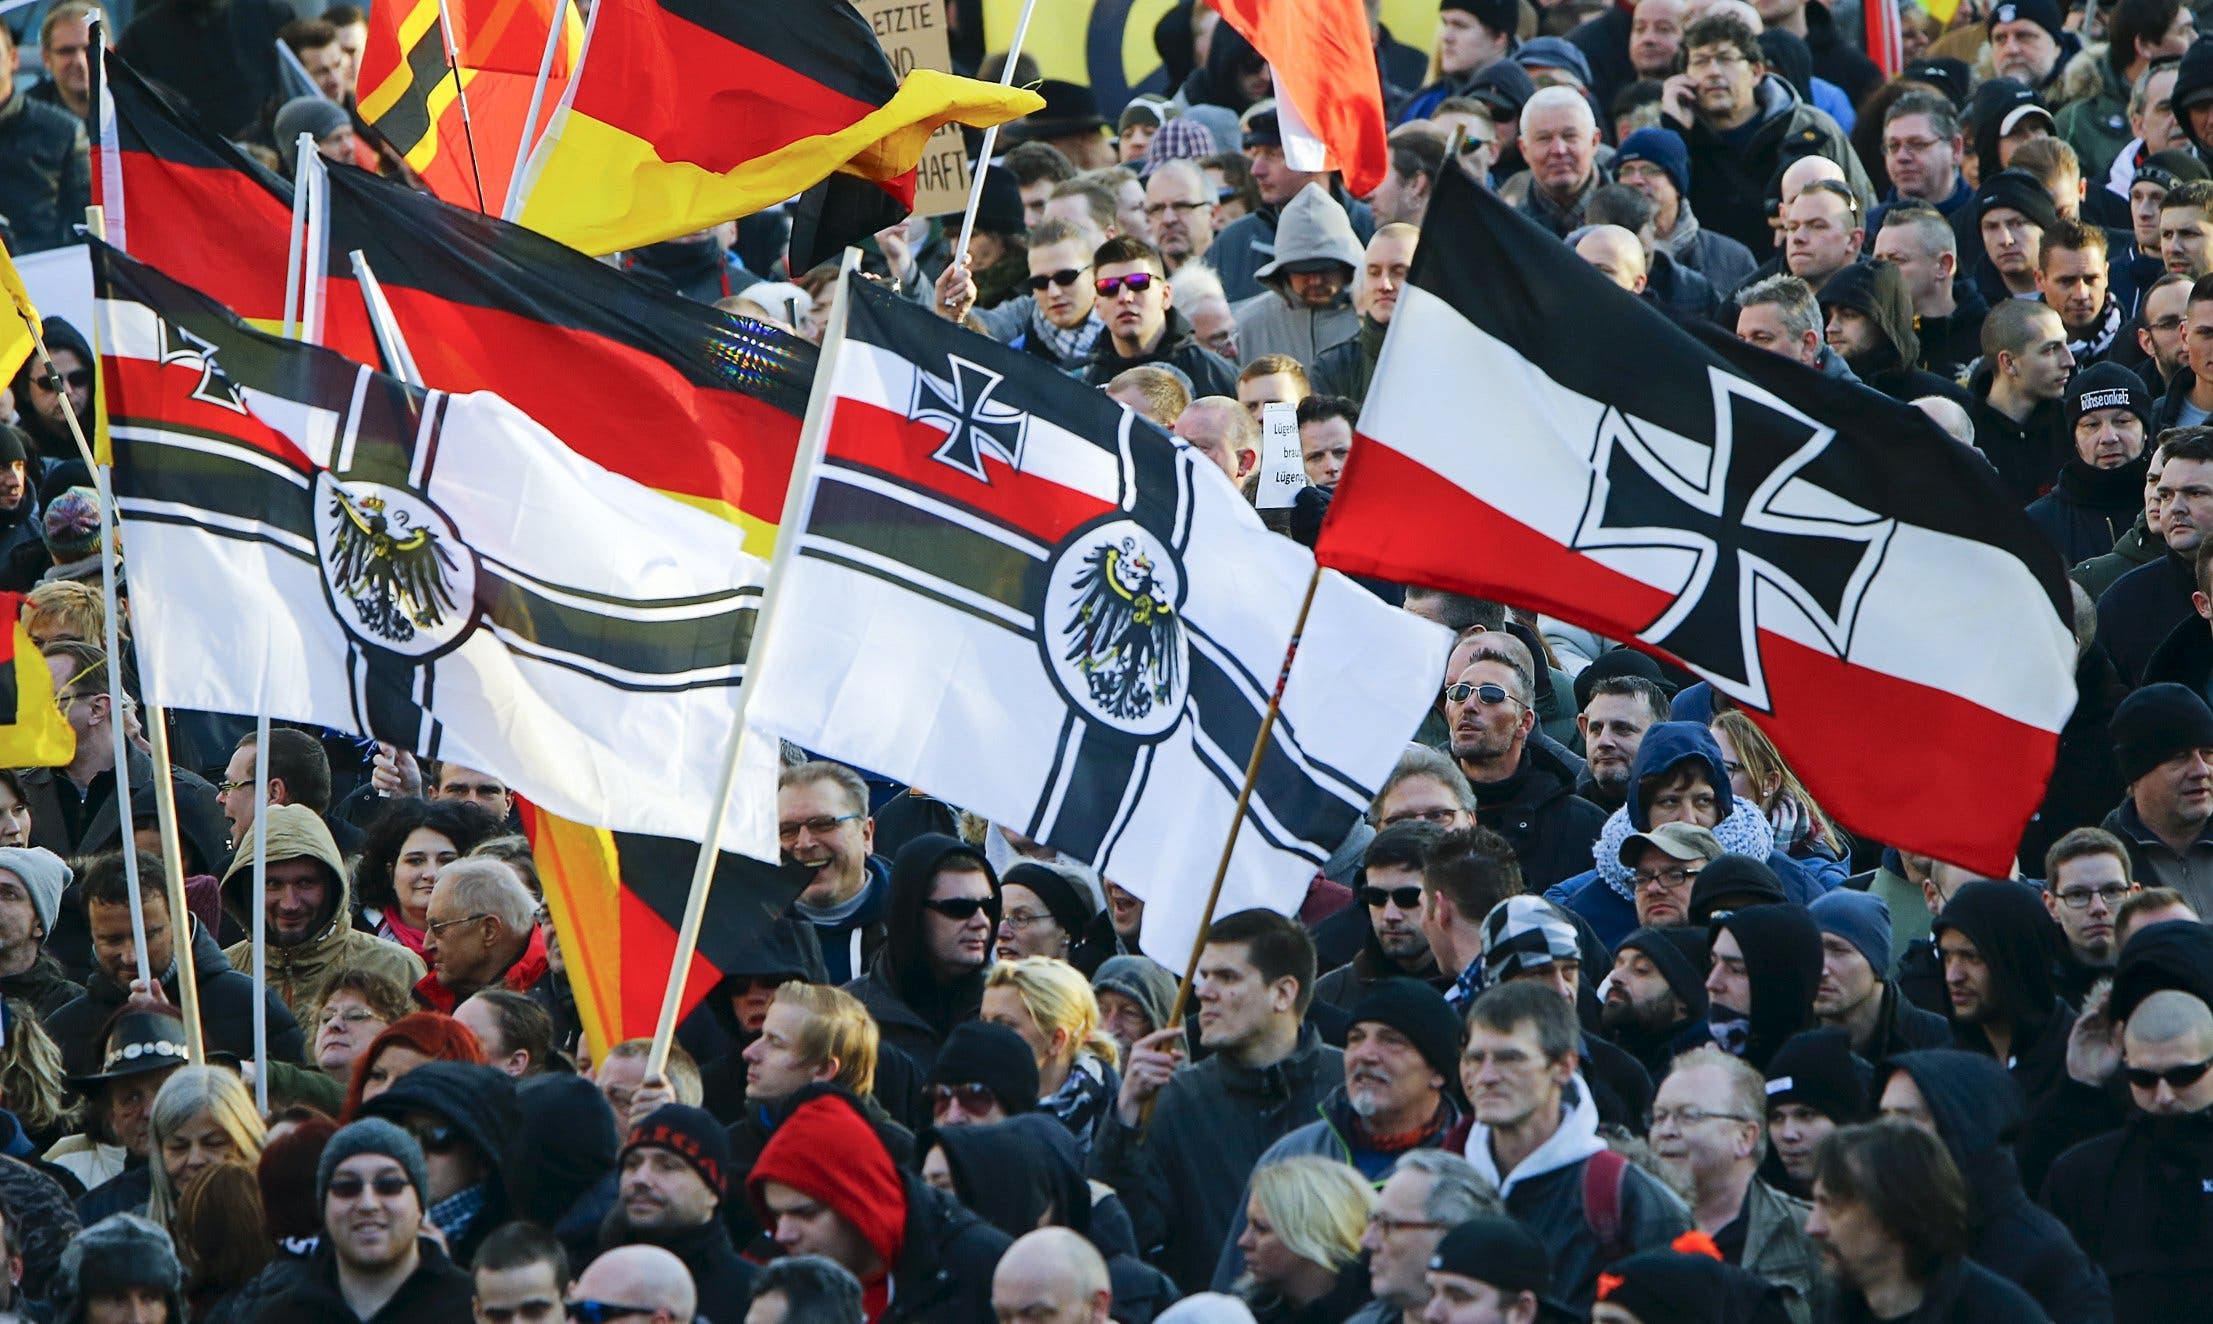 Supporters of anti-immigration right-wing movement PEGIDA (Patriotic Europeans Against the Islamisation of the West) carry various versions of the Imperial War Flag (Reichskriegsflagge) during a demonstration march, in reaction to mass assaults on women on New Year's Eve, in Cologne, Germany January 9, 2016. reuters